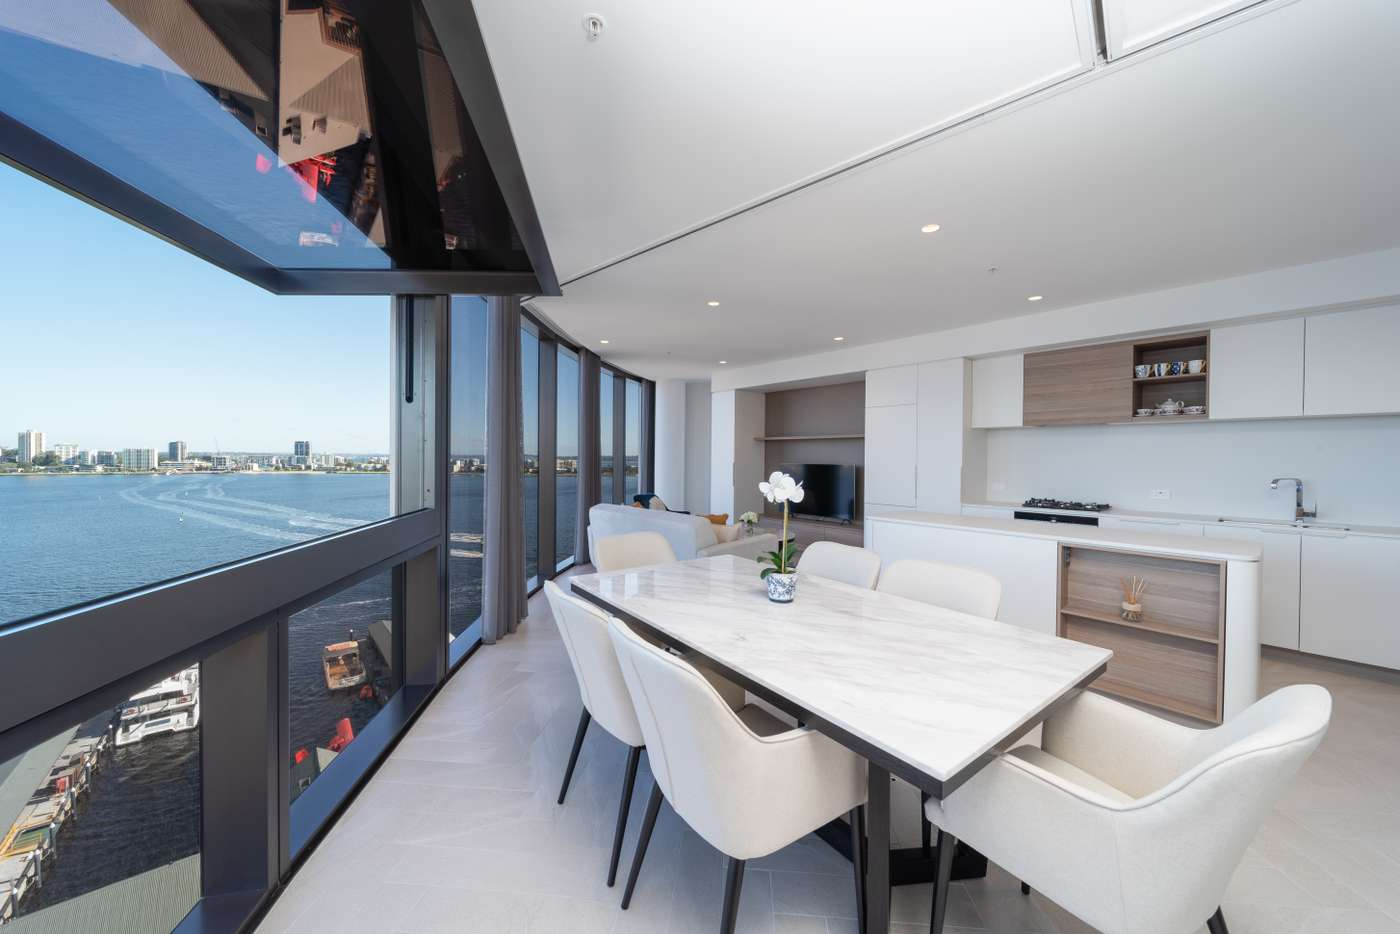 Main view of Homely apartment listing, 1101/11 Barrack Square, Perth WA 6000